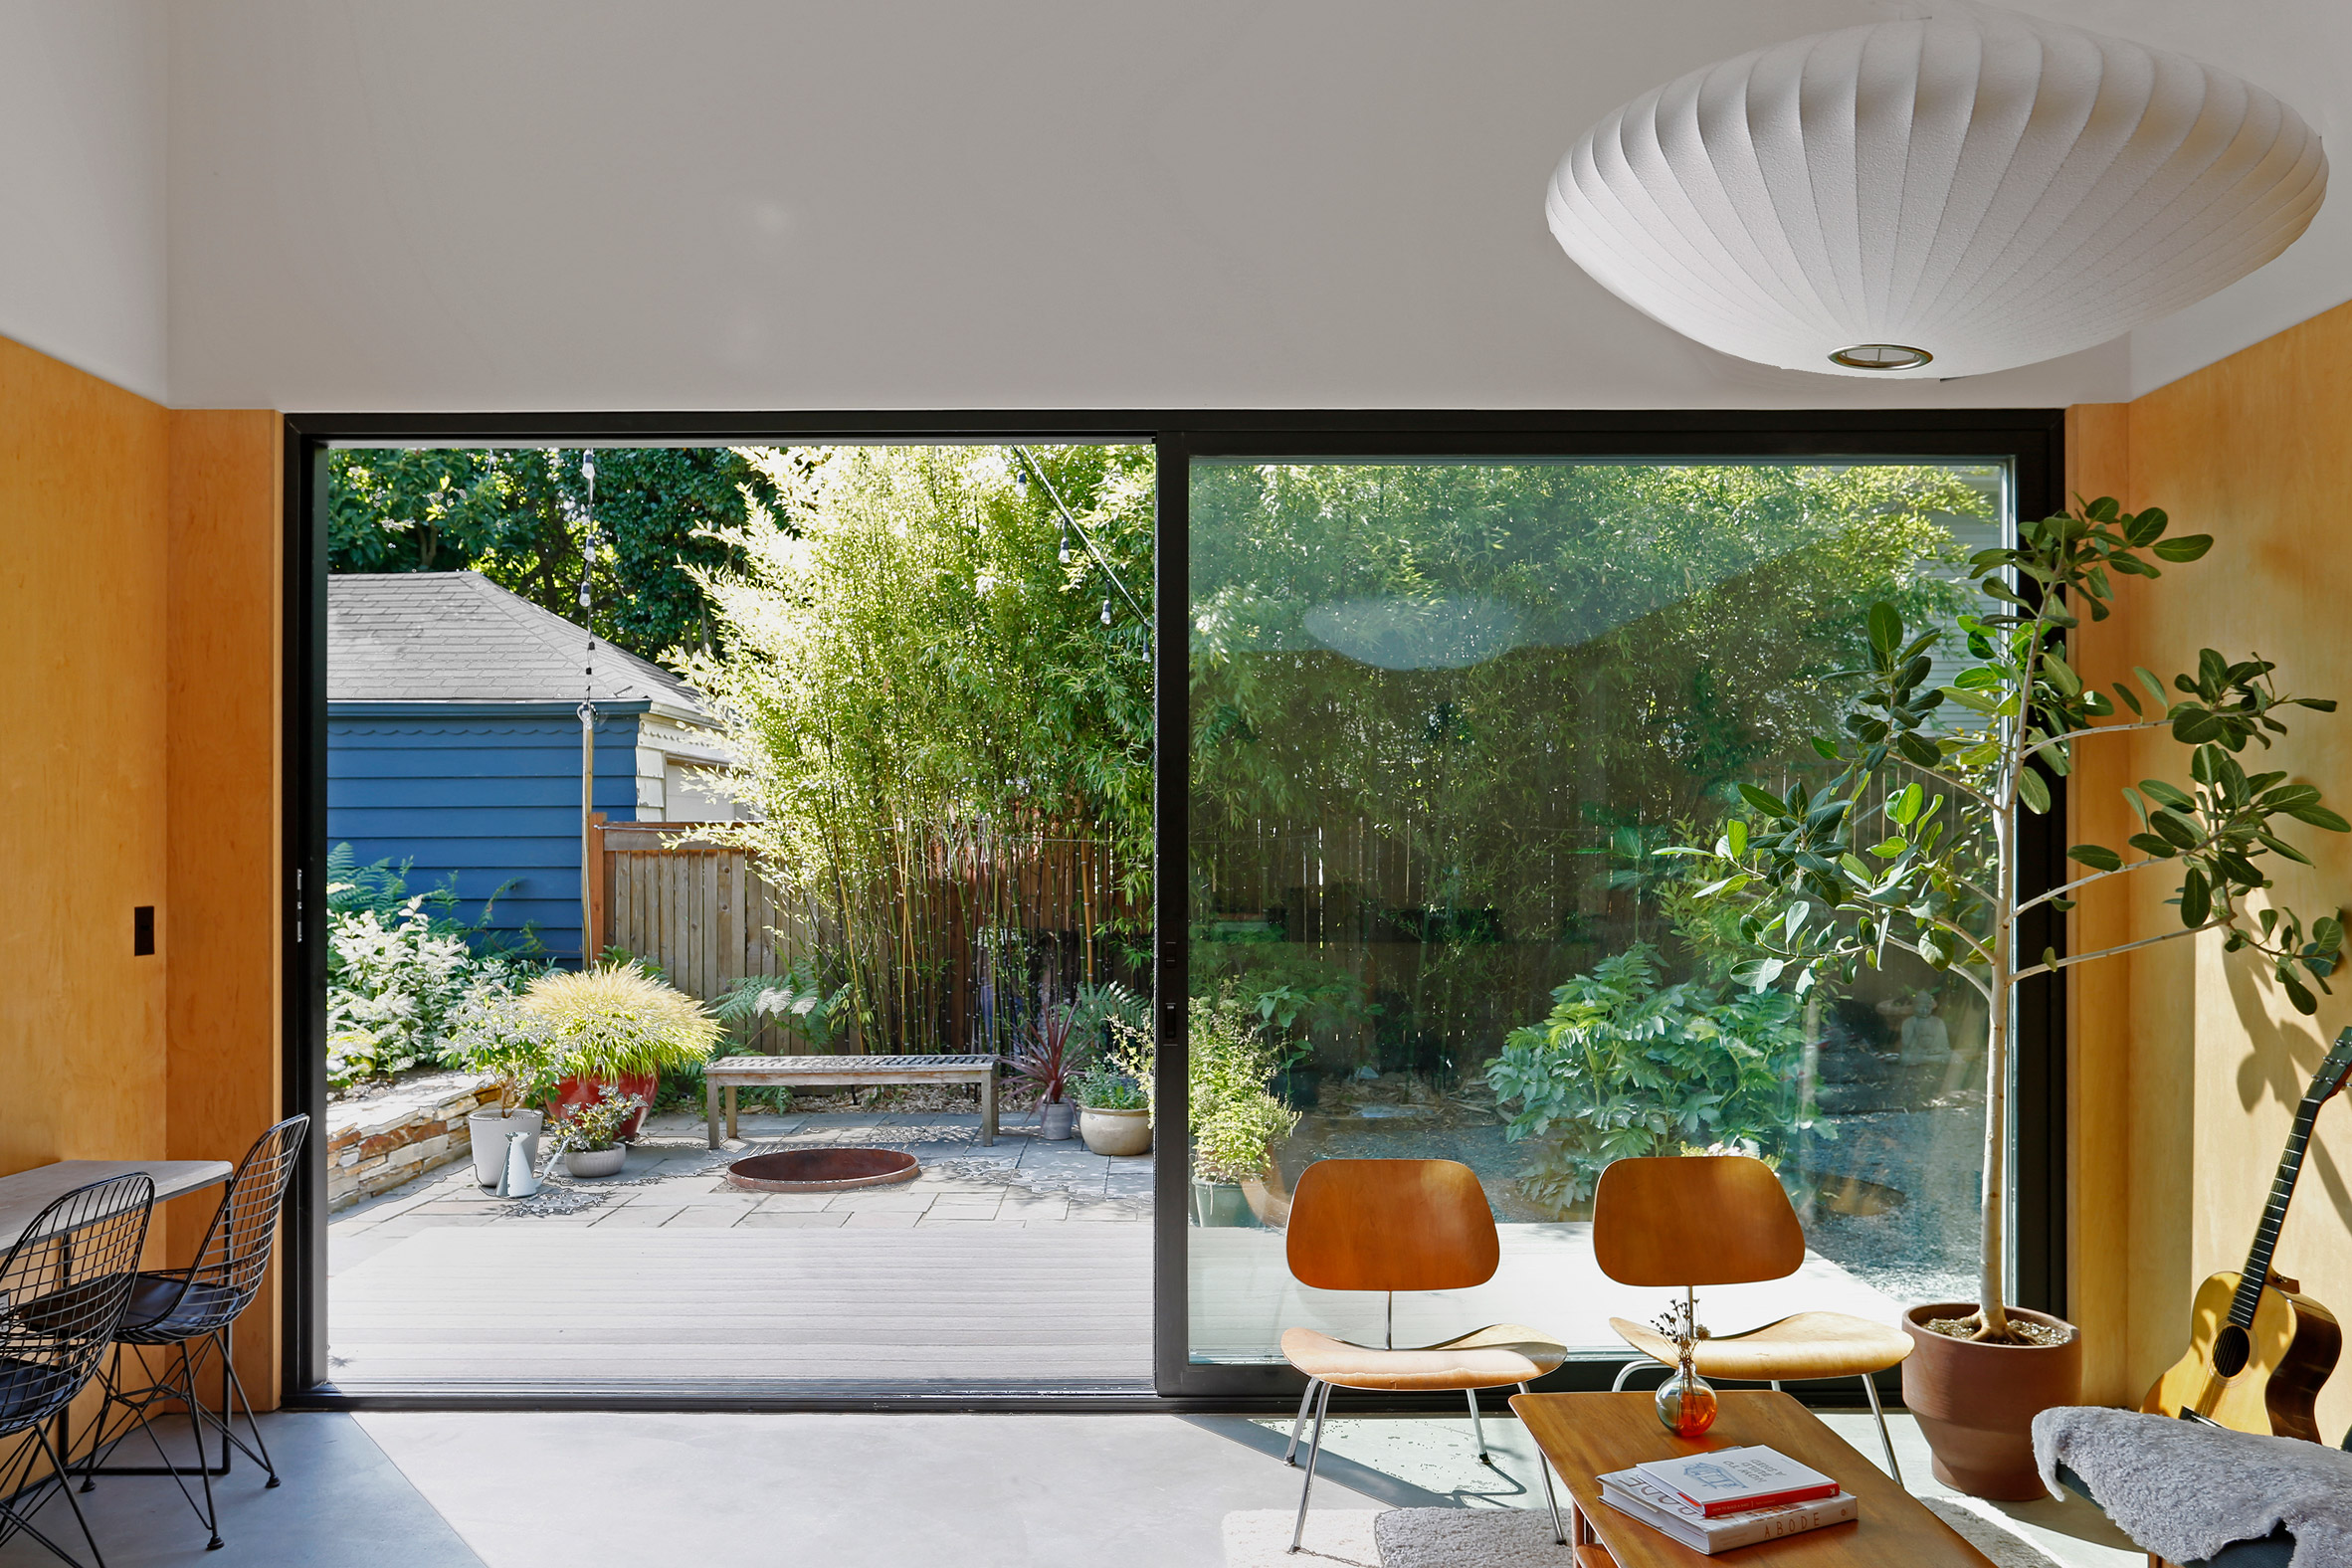 alley-cat-detached-auxiliary-dwelling-unit-shed-seattle-washingtondezeen2364col5-15850229966691660989766.jpg